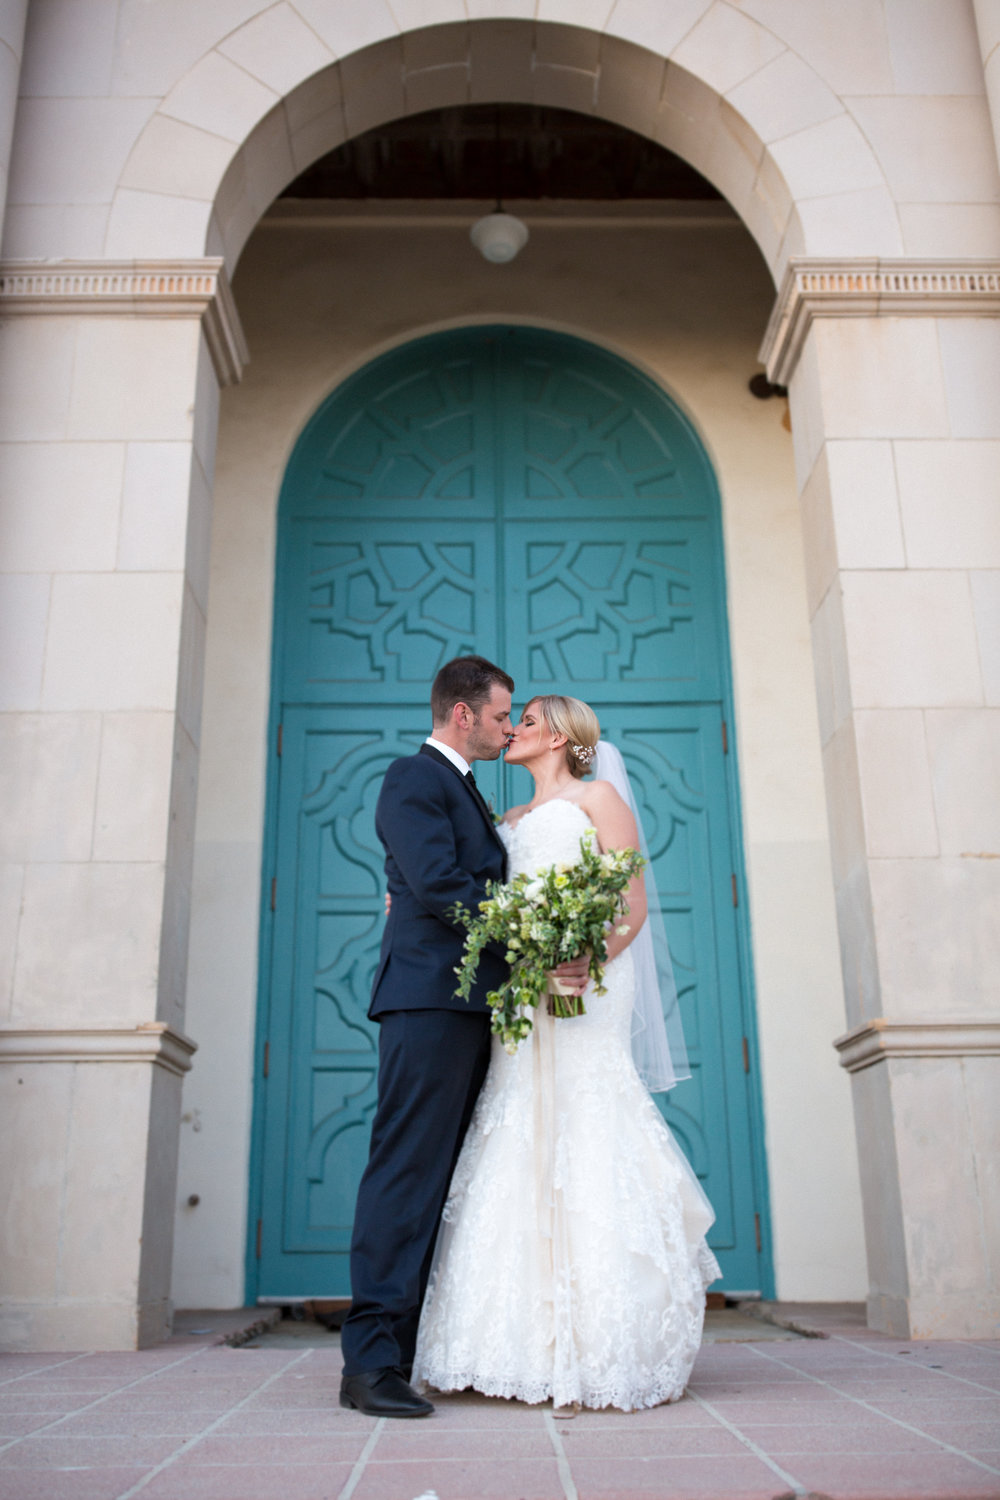 www.santabarbarawedding.com | Elizabeth Victoria Photo | Garden Street Academy | Bride and Groom